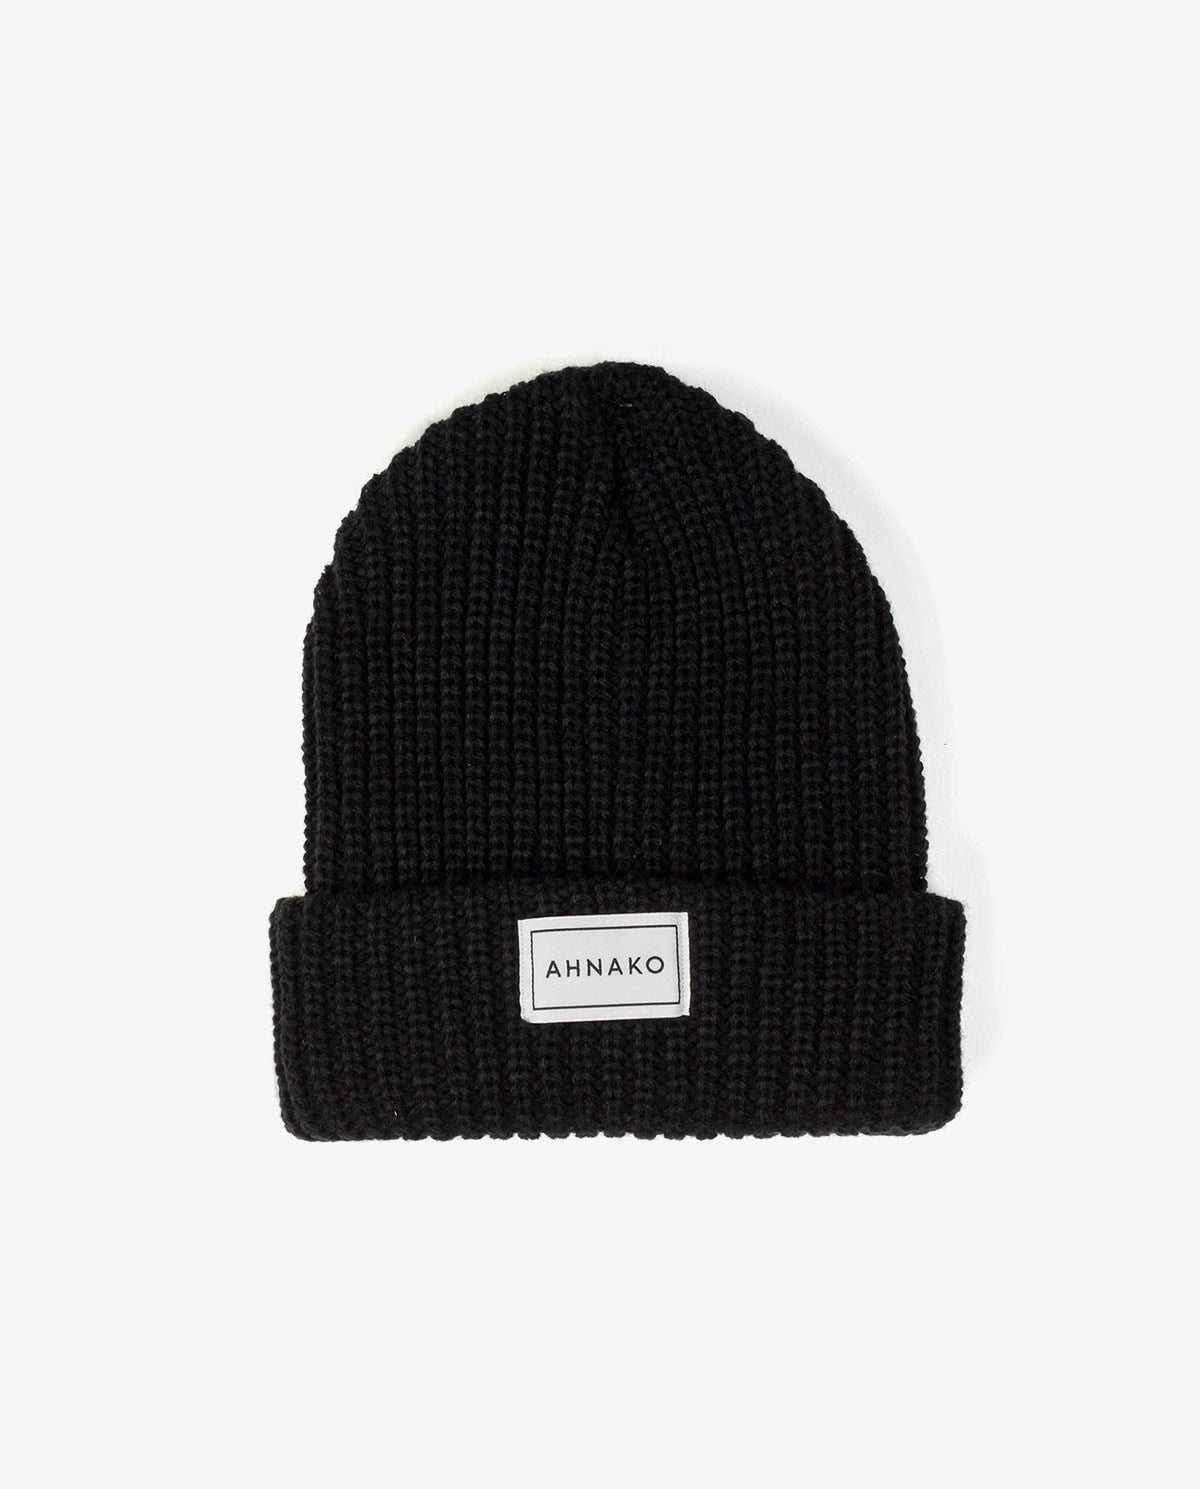 Ahnako Thick Knitted Beanie - Black